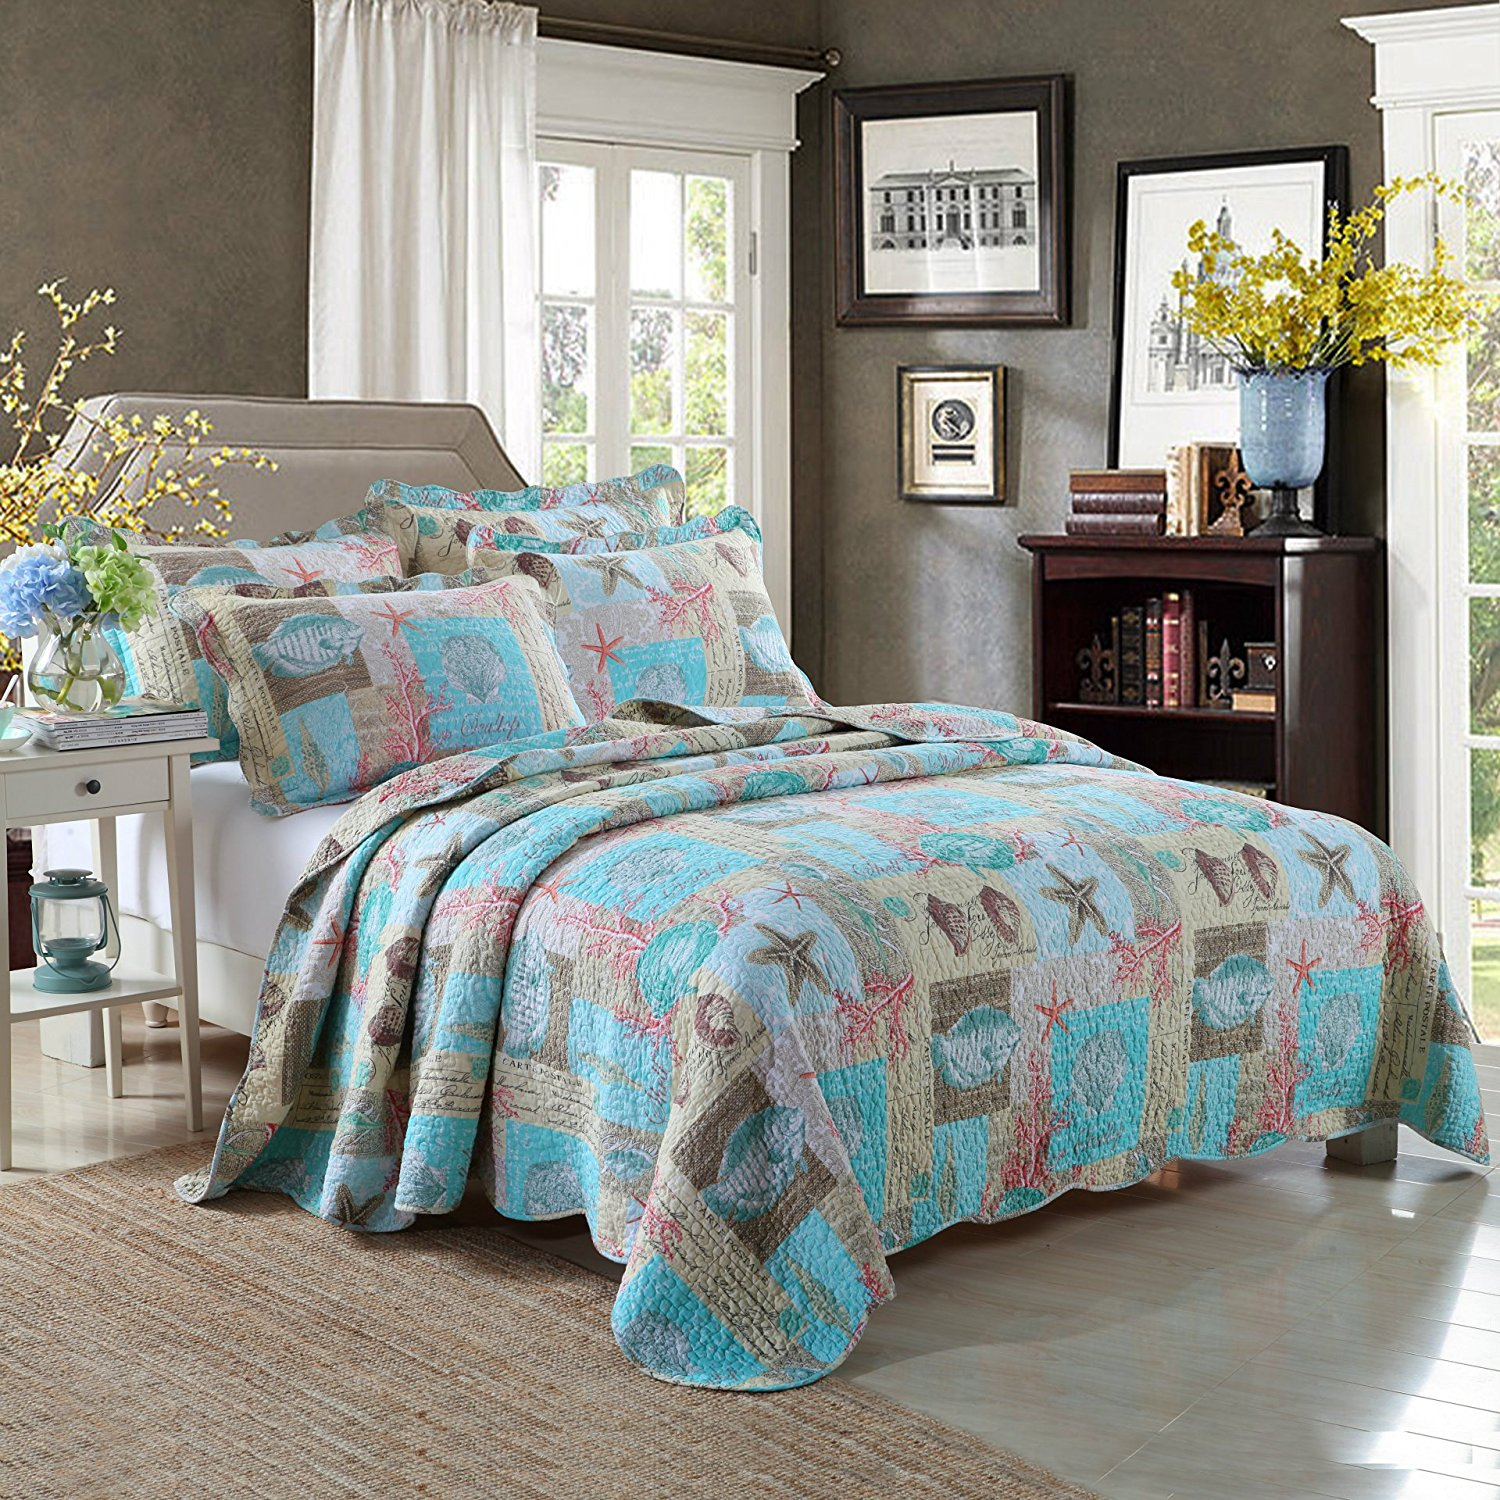 duvet tips blending two bedroom styles on rustic create modern blend how covers see reveal to a